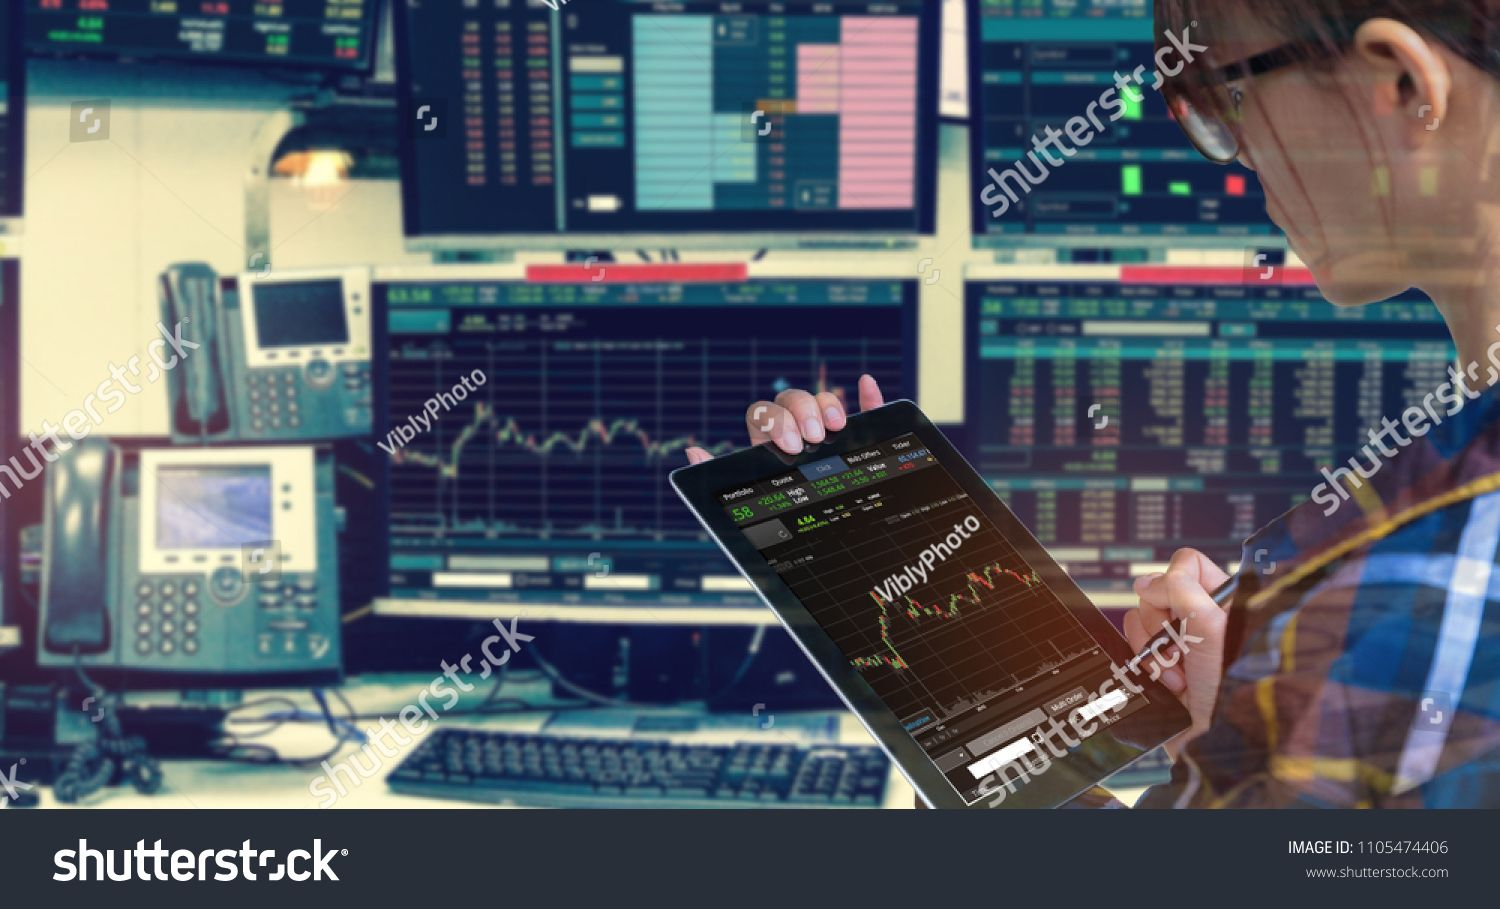 Double Exposure Of Business Woman Holding Tablet For Stock Market Quotes And Chart In Monitor Computer Ro Stock Market Quotes Stock Screener Best Stocks To Buy